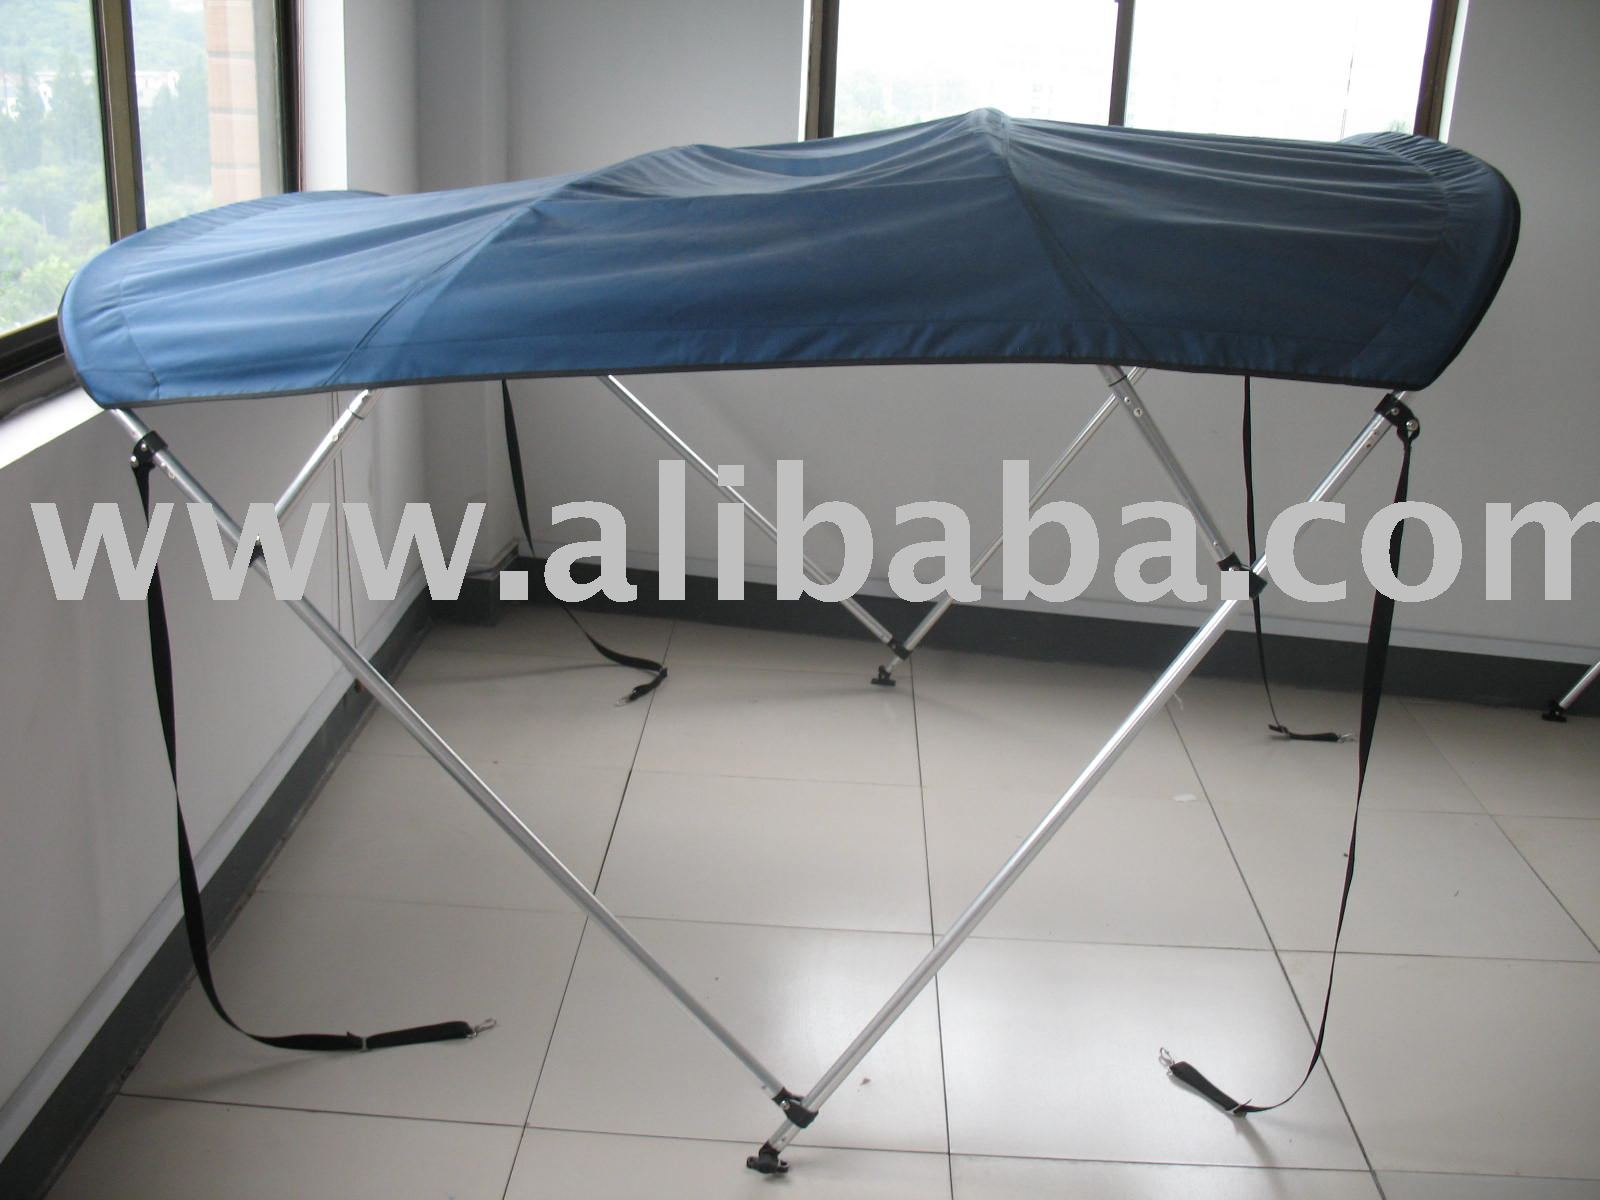 Bimini TopBoat CanopyBoat CanvasBoat Cover - Buy Bimini Top Product on Alibaba.com & Bimini TopBoat CanopyBoat CanvasBoat Cover - Buy Bimini Top ...